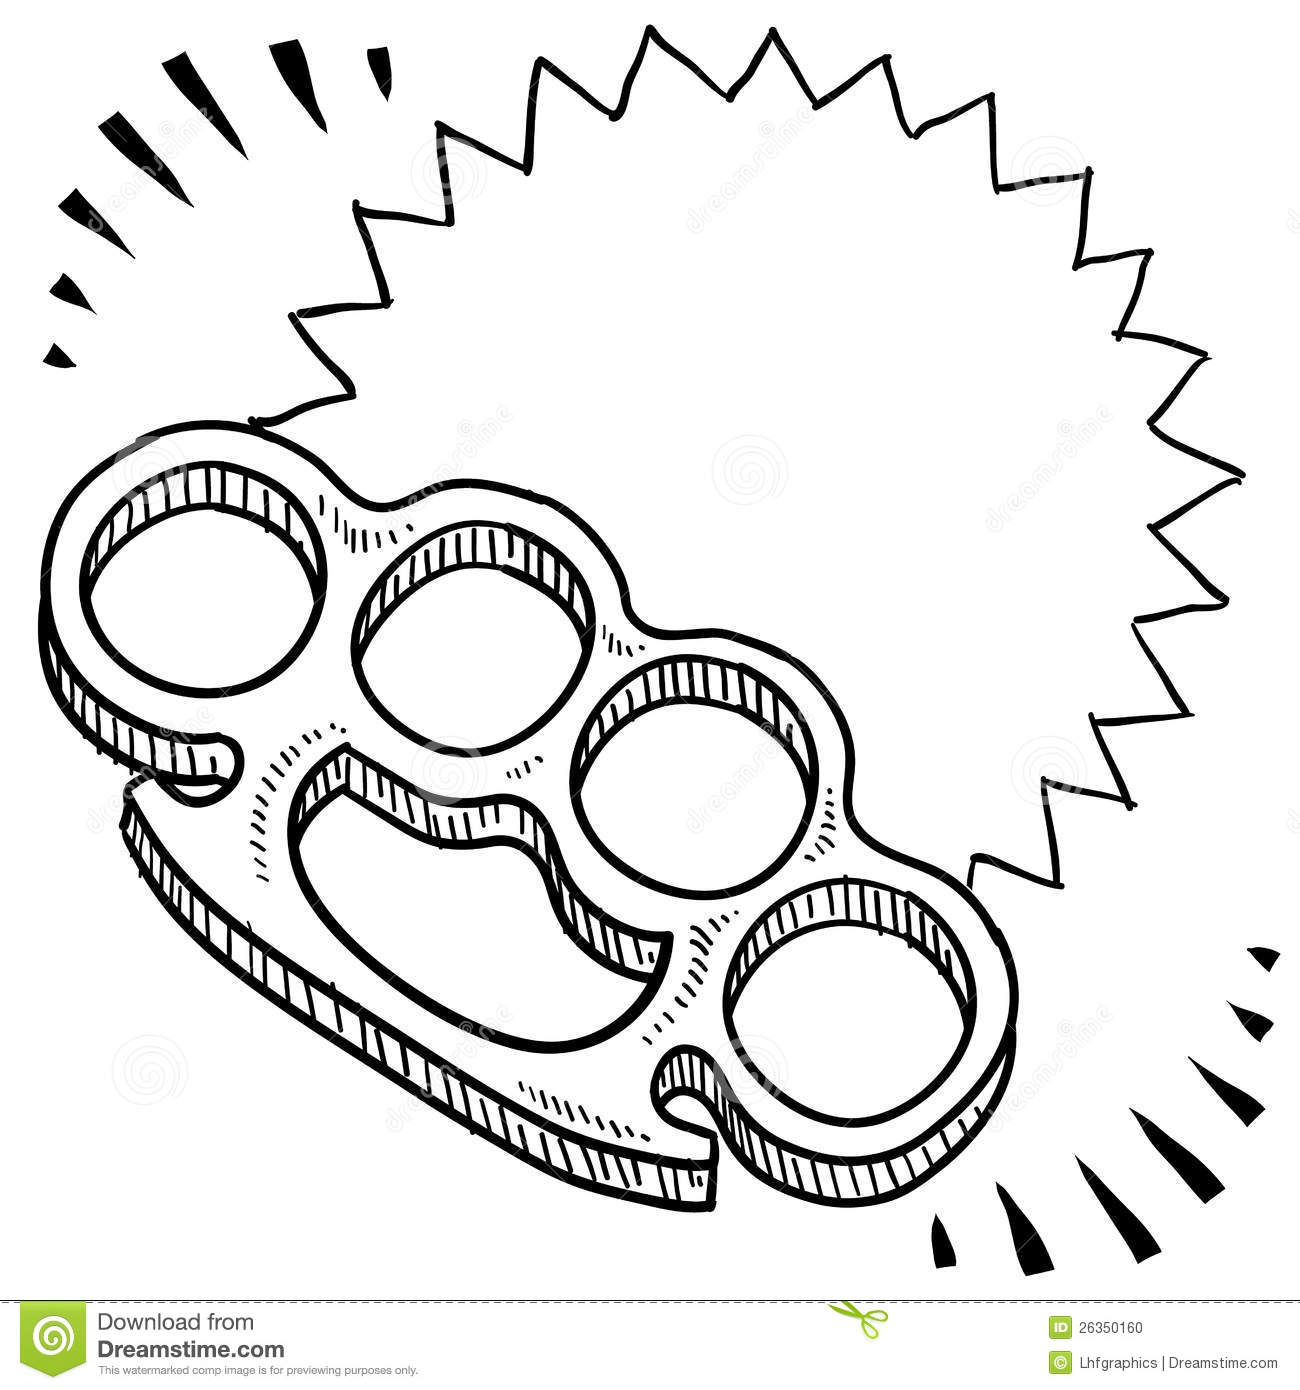 Brass knuckles sketch stock photo image 26350160 for Brass knuckles template